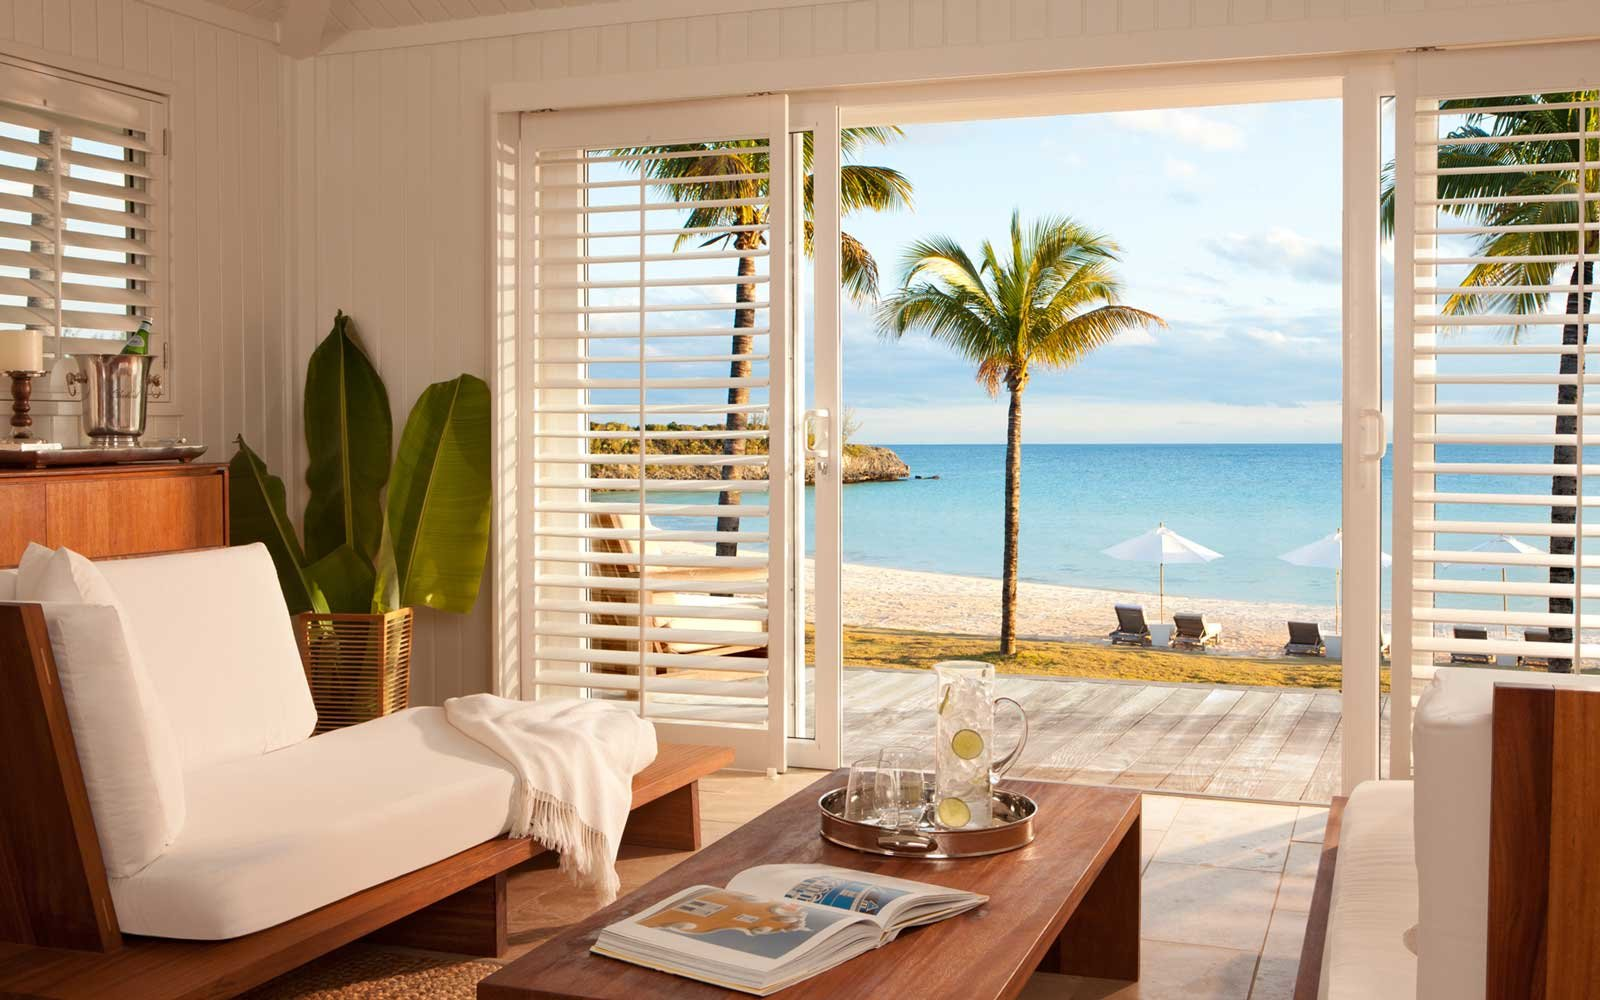 Room at The Cove, Eleuthera